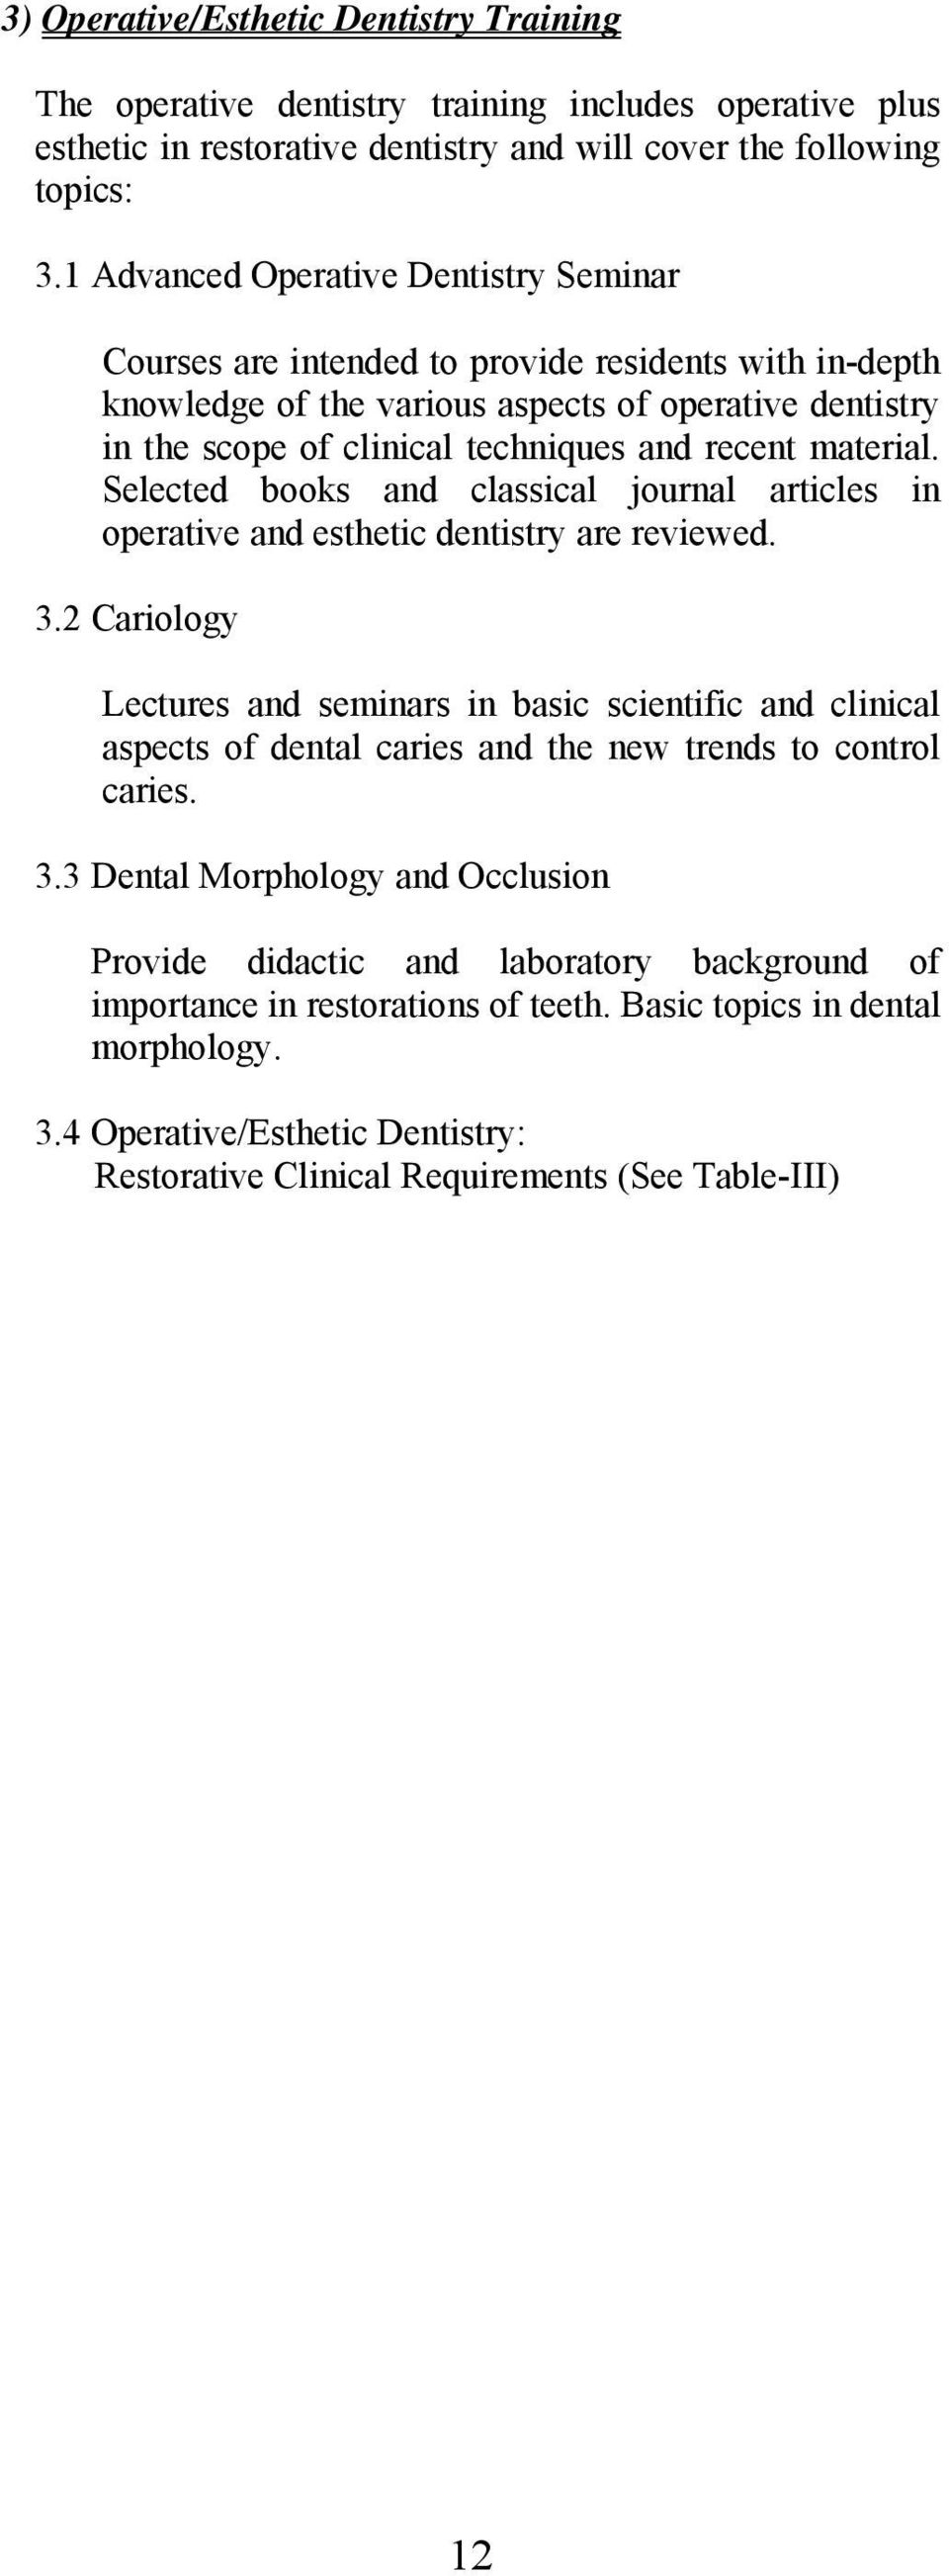 material. Selected books and classical journal articles in operative and esthetic dentistry are reviewed. 3.